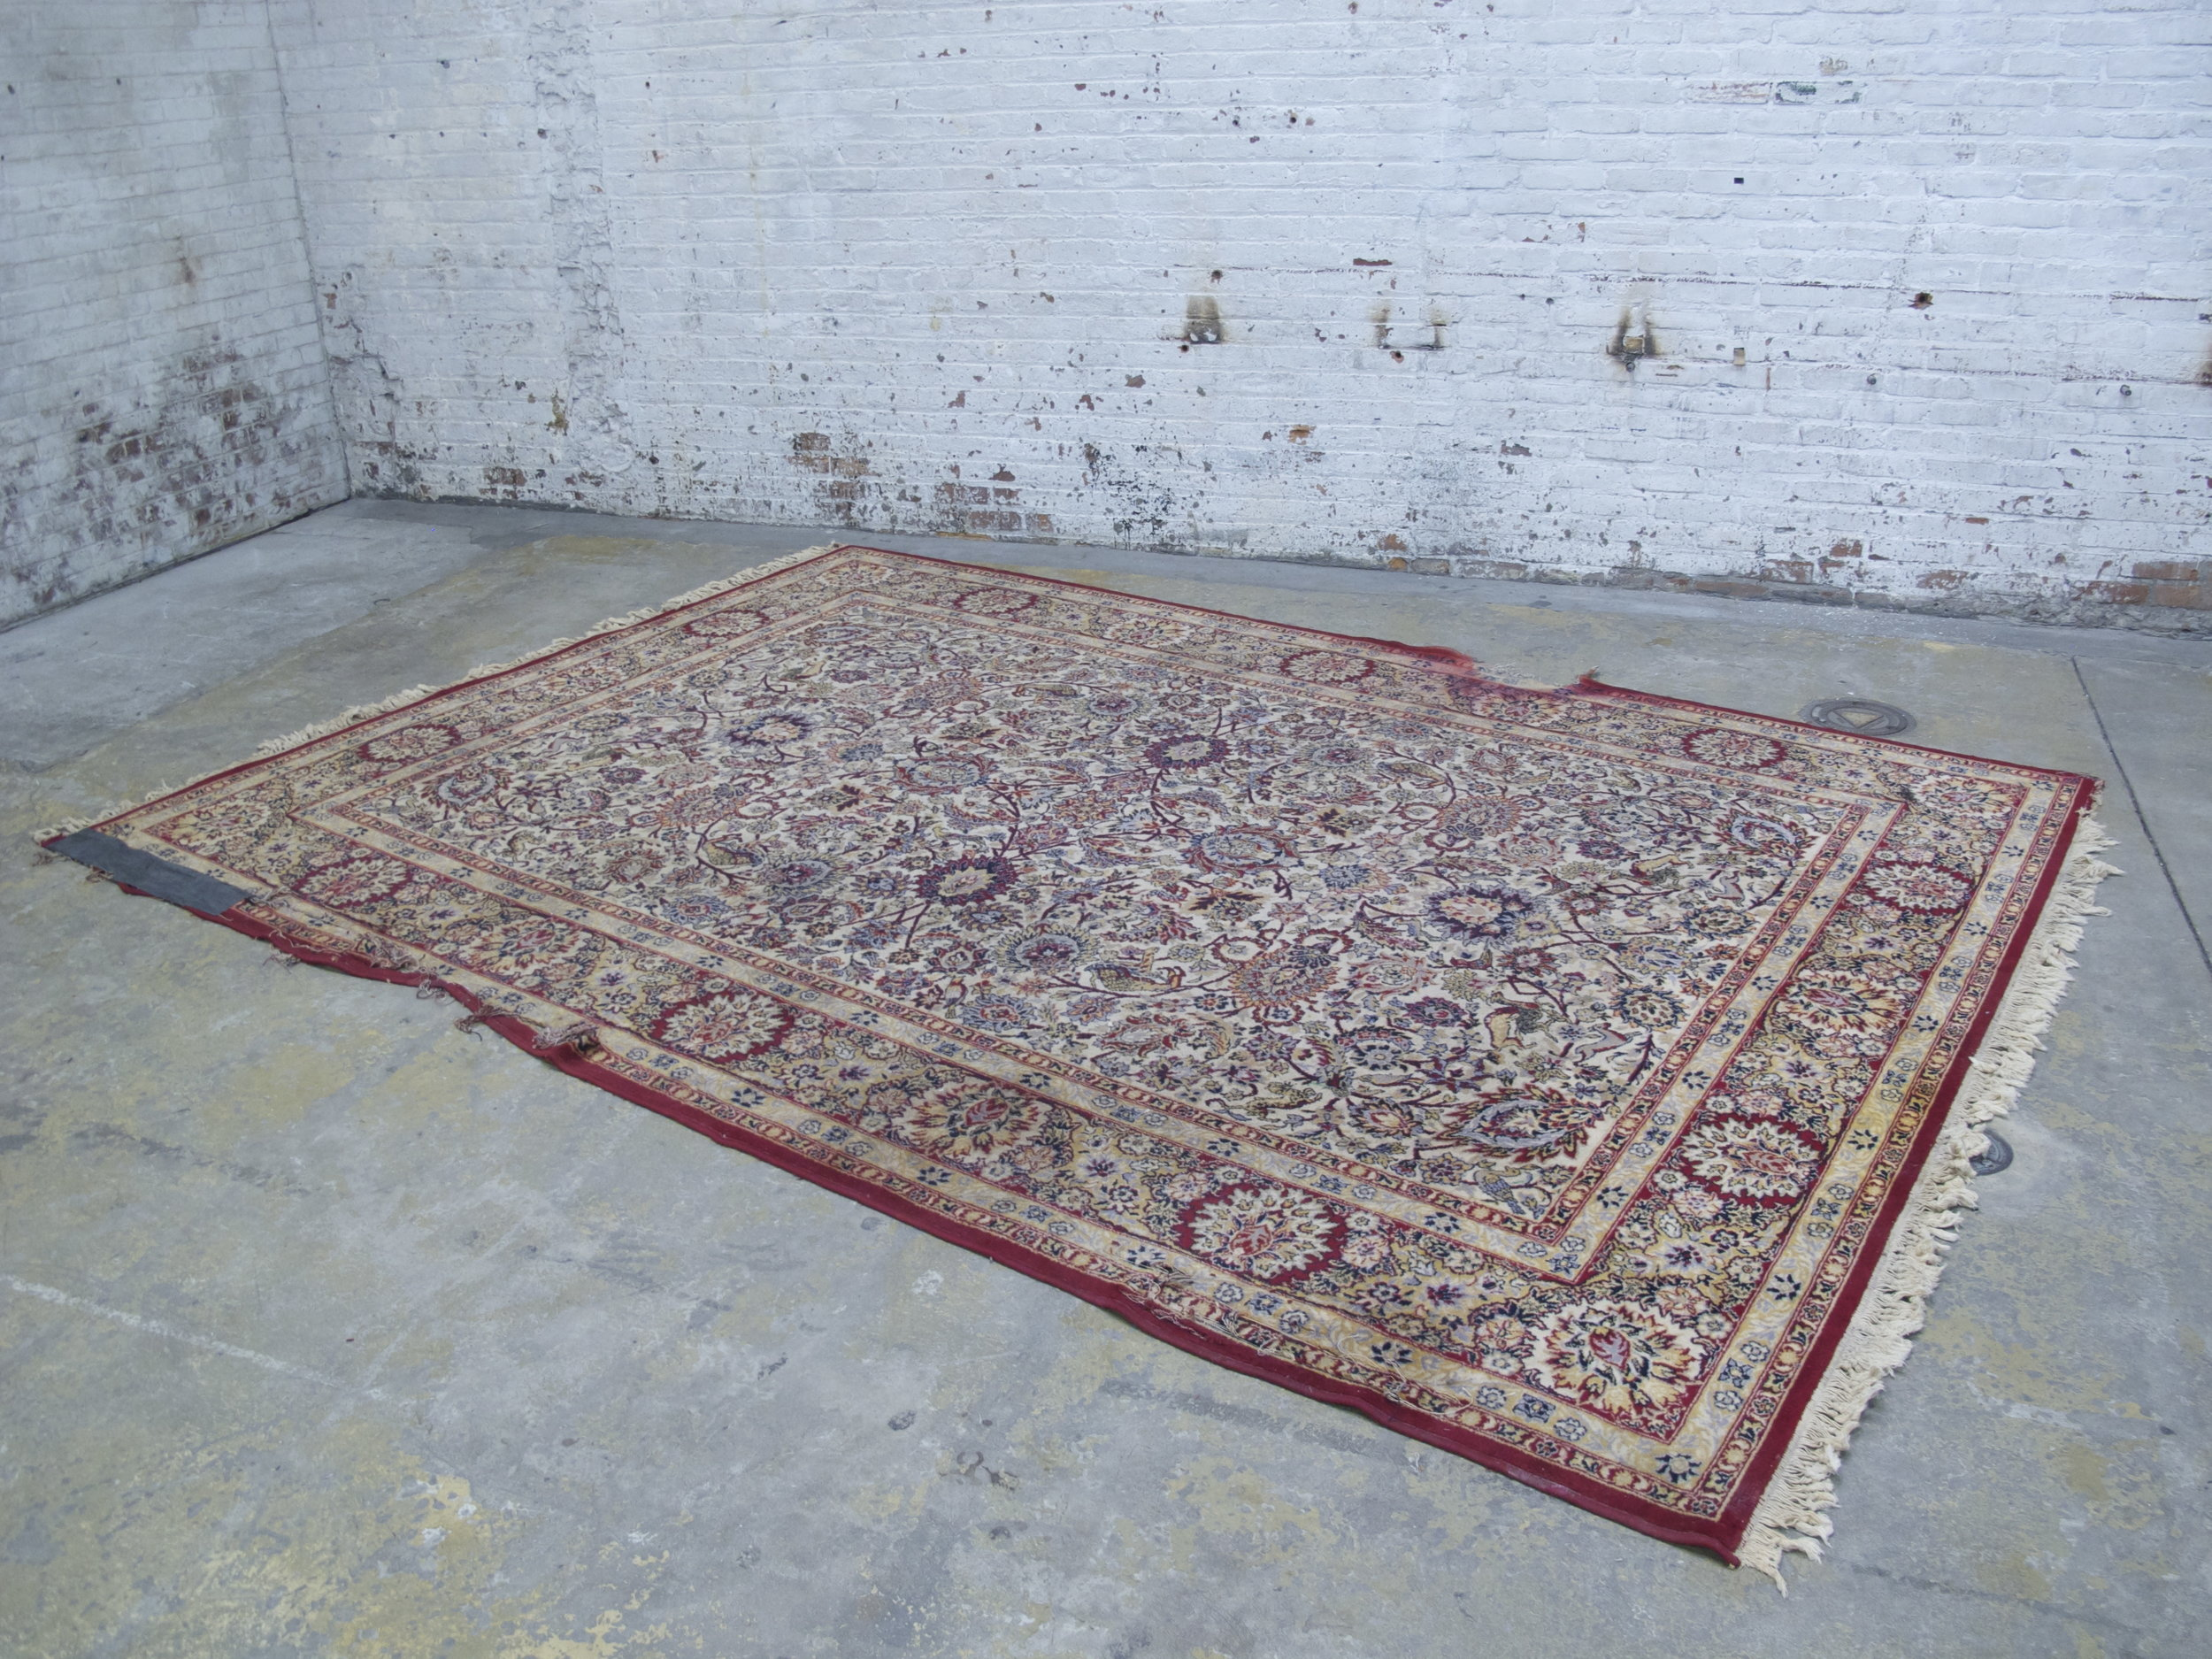 Distressed Red Patterned Rug 11.5ft x 8ft $200